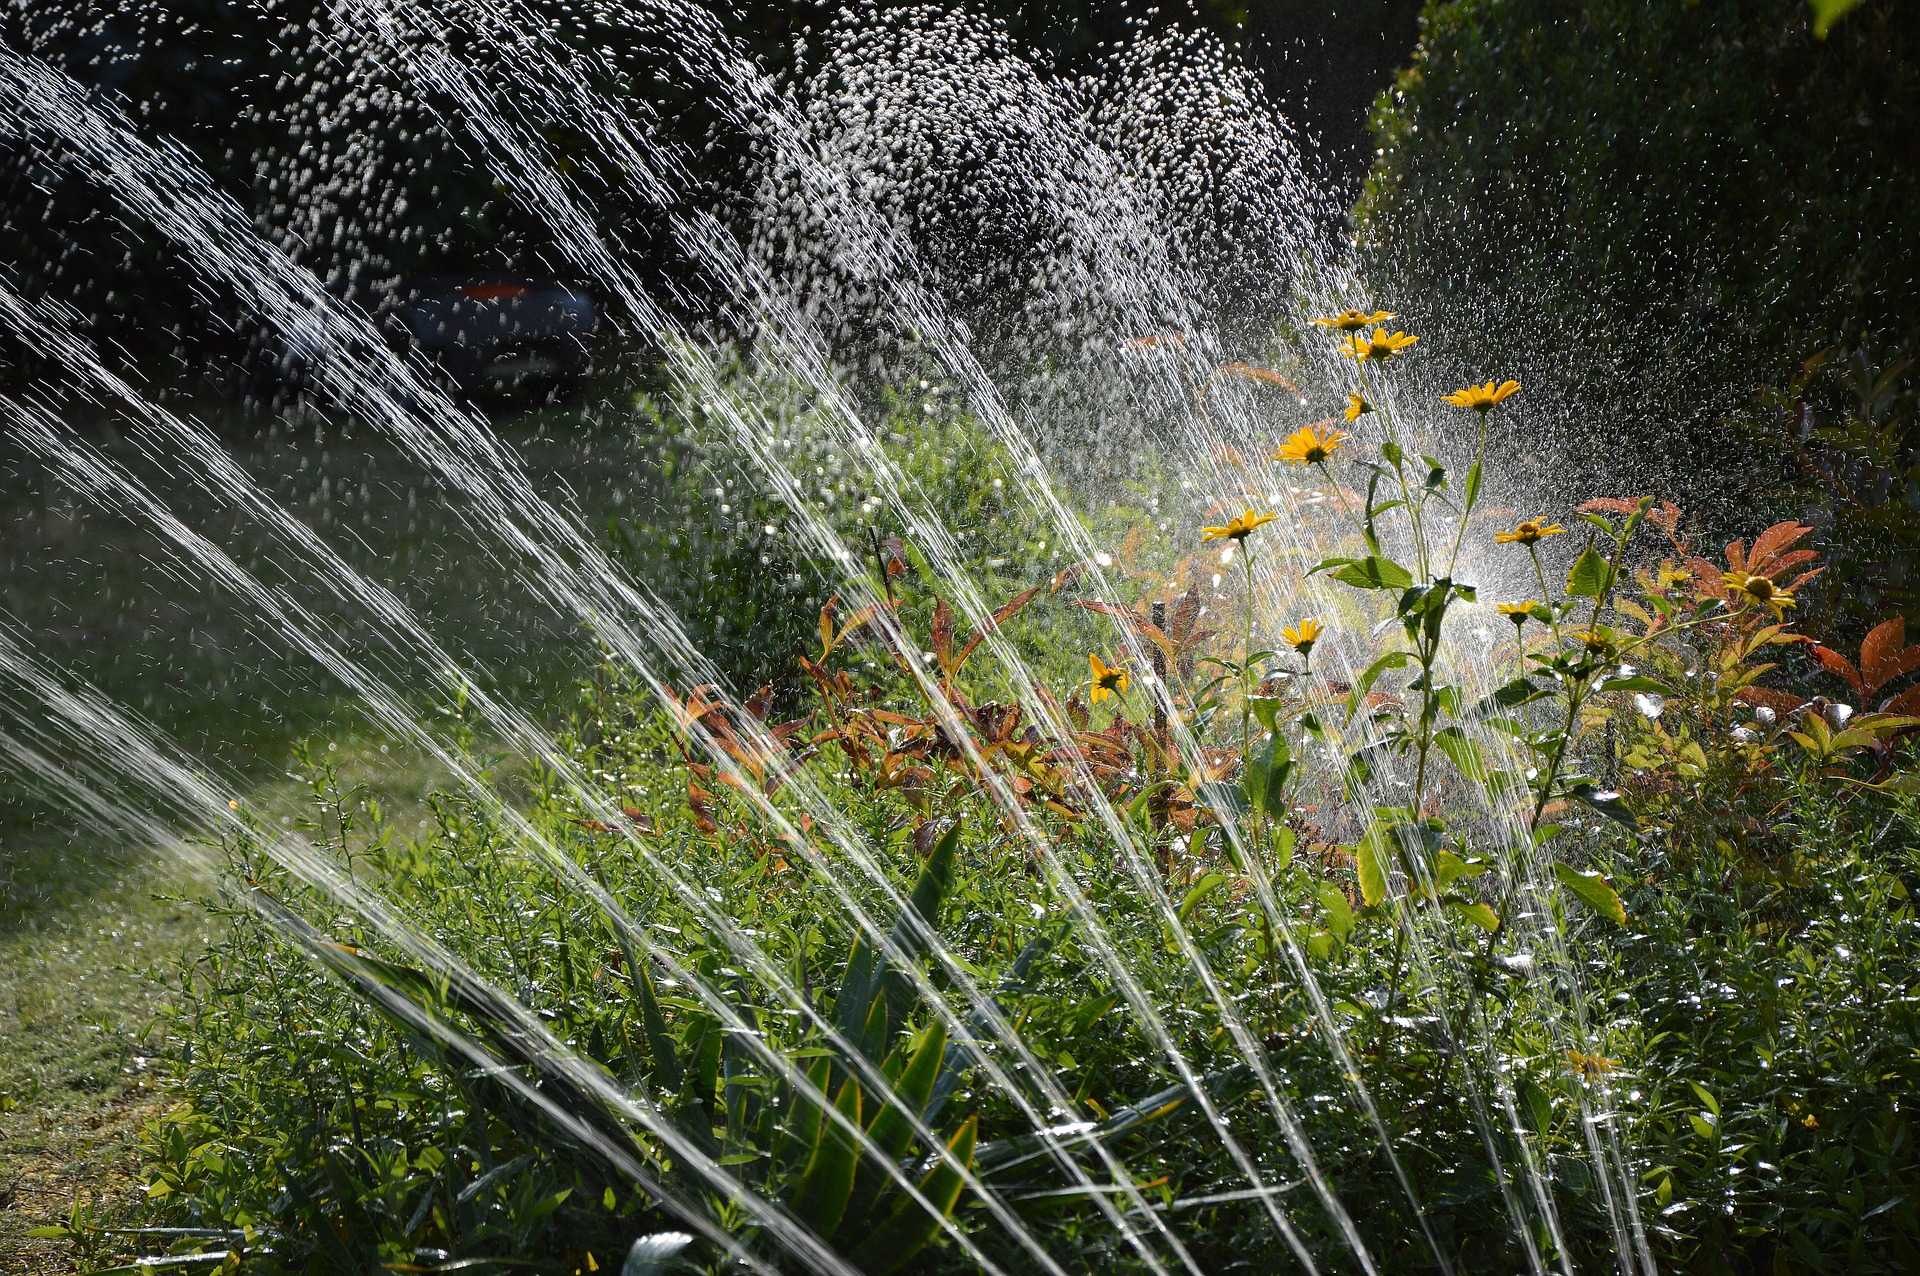 Watering a garden after a successful sprinkler repair in Thousand Oaks, California